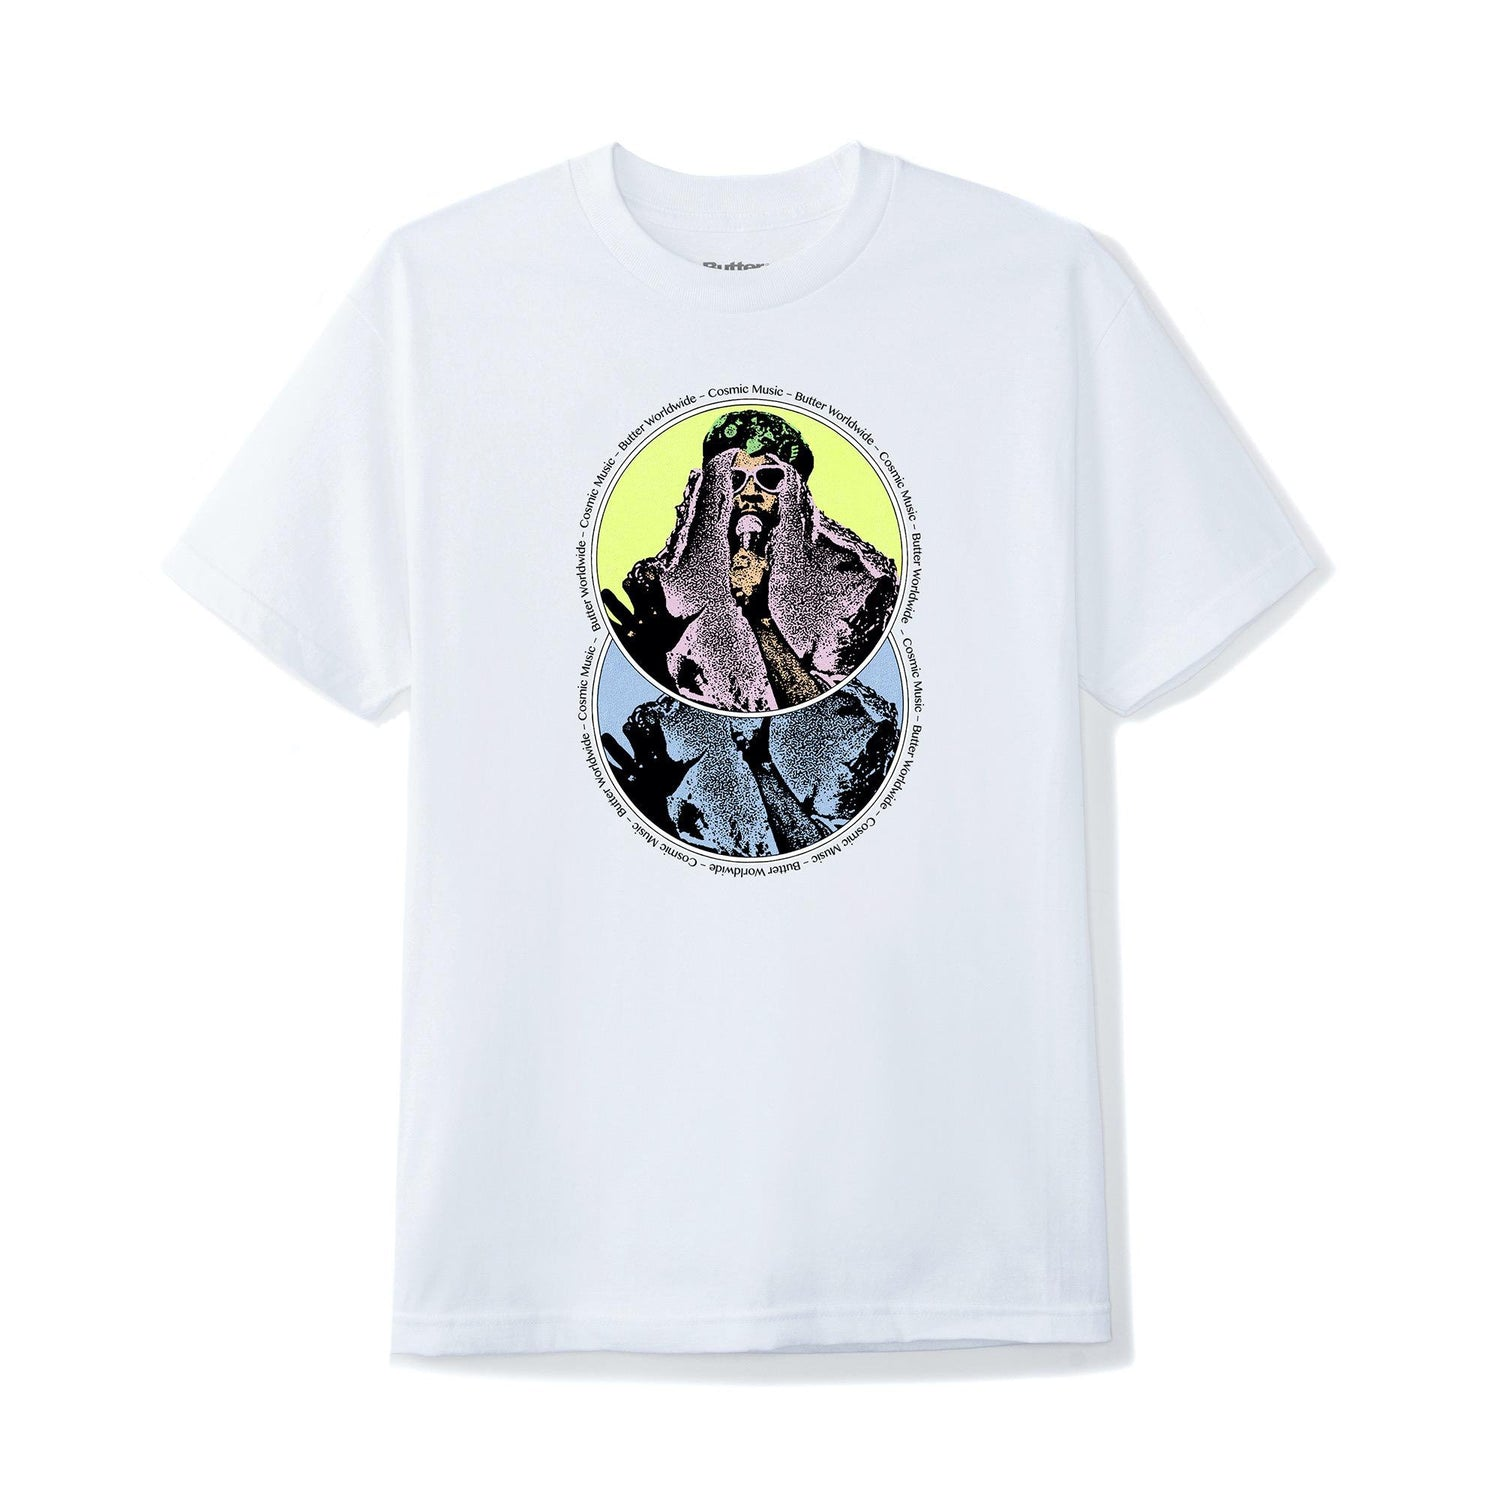 Cosmic Music Tee, White